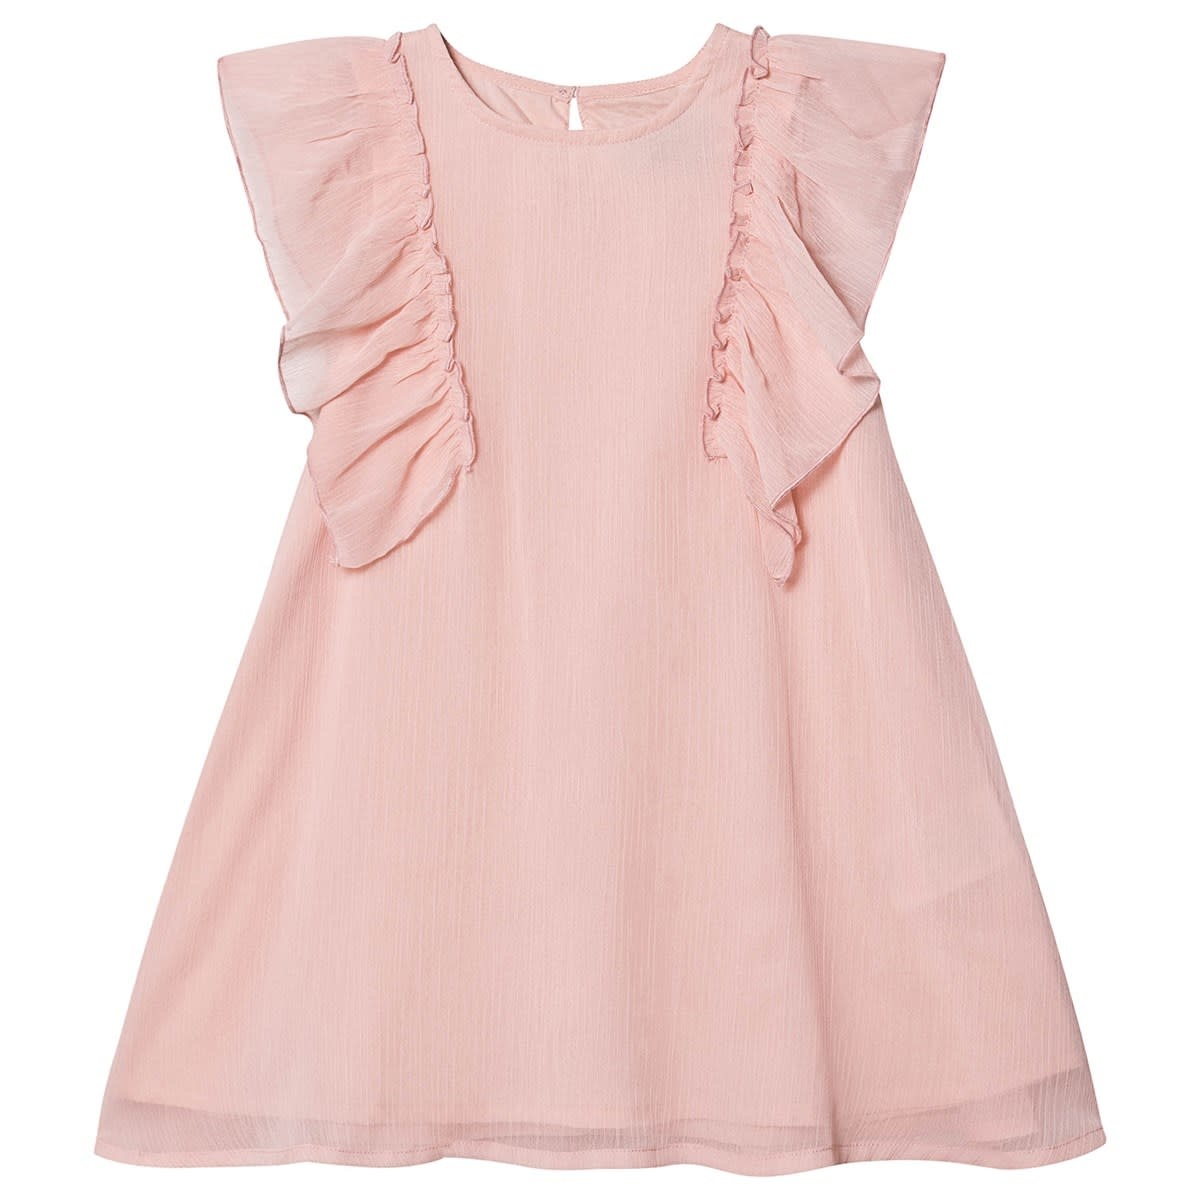 Creamie Chiffon Dress